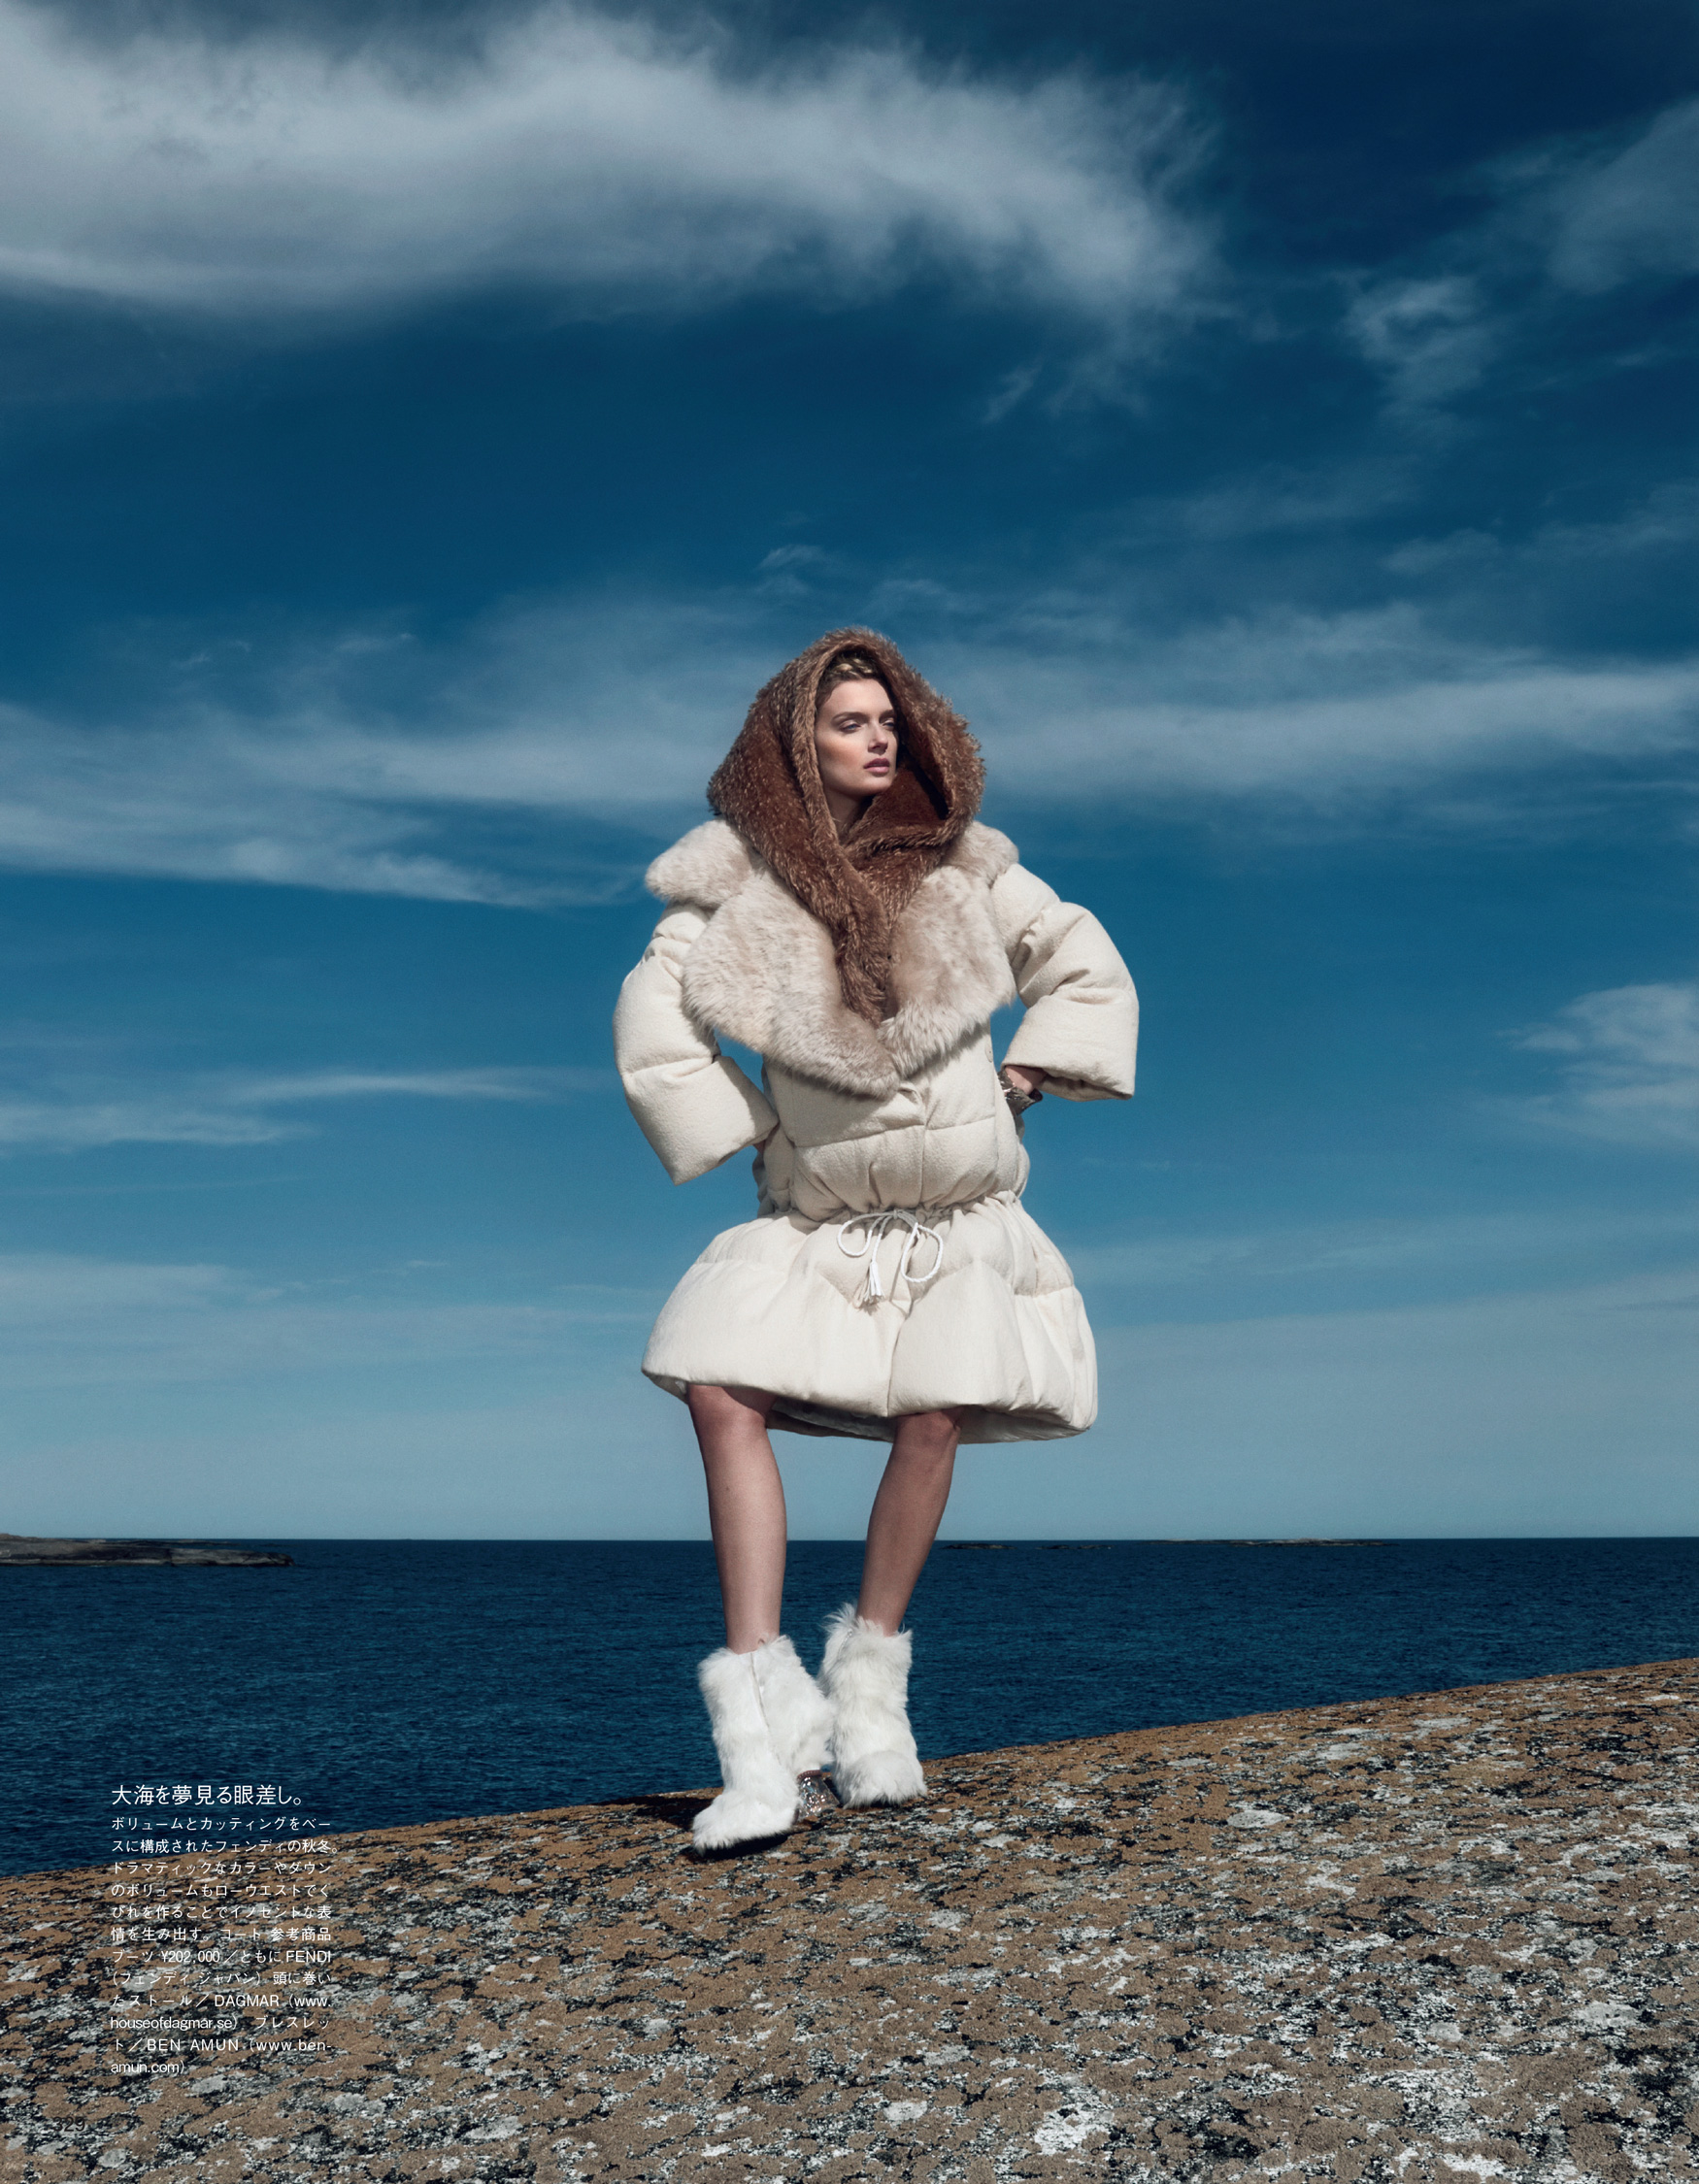 Giovanna-Battaglia-Vogue-Japan-The-Nordic-Queen-October-2015-Emma-Summerton-3.jpg